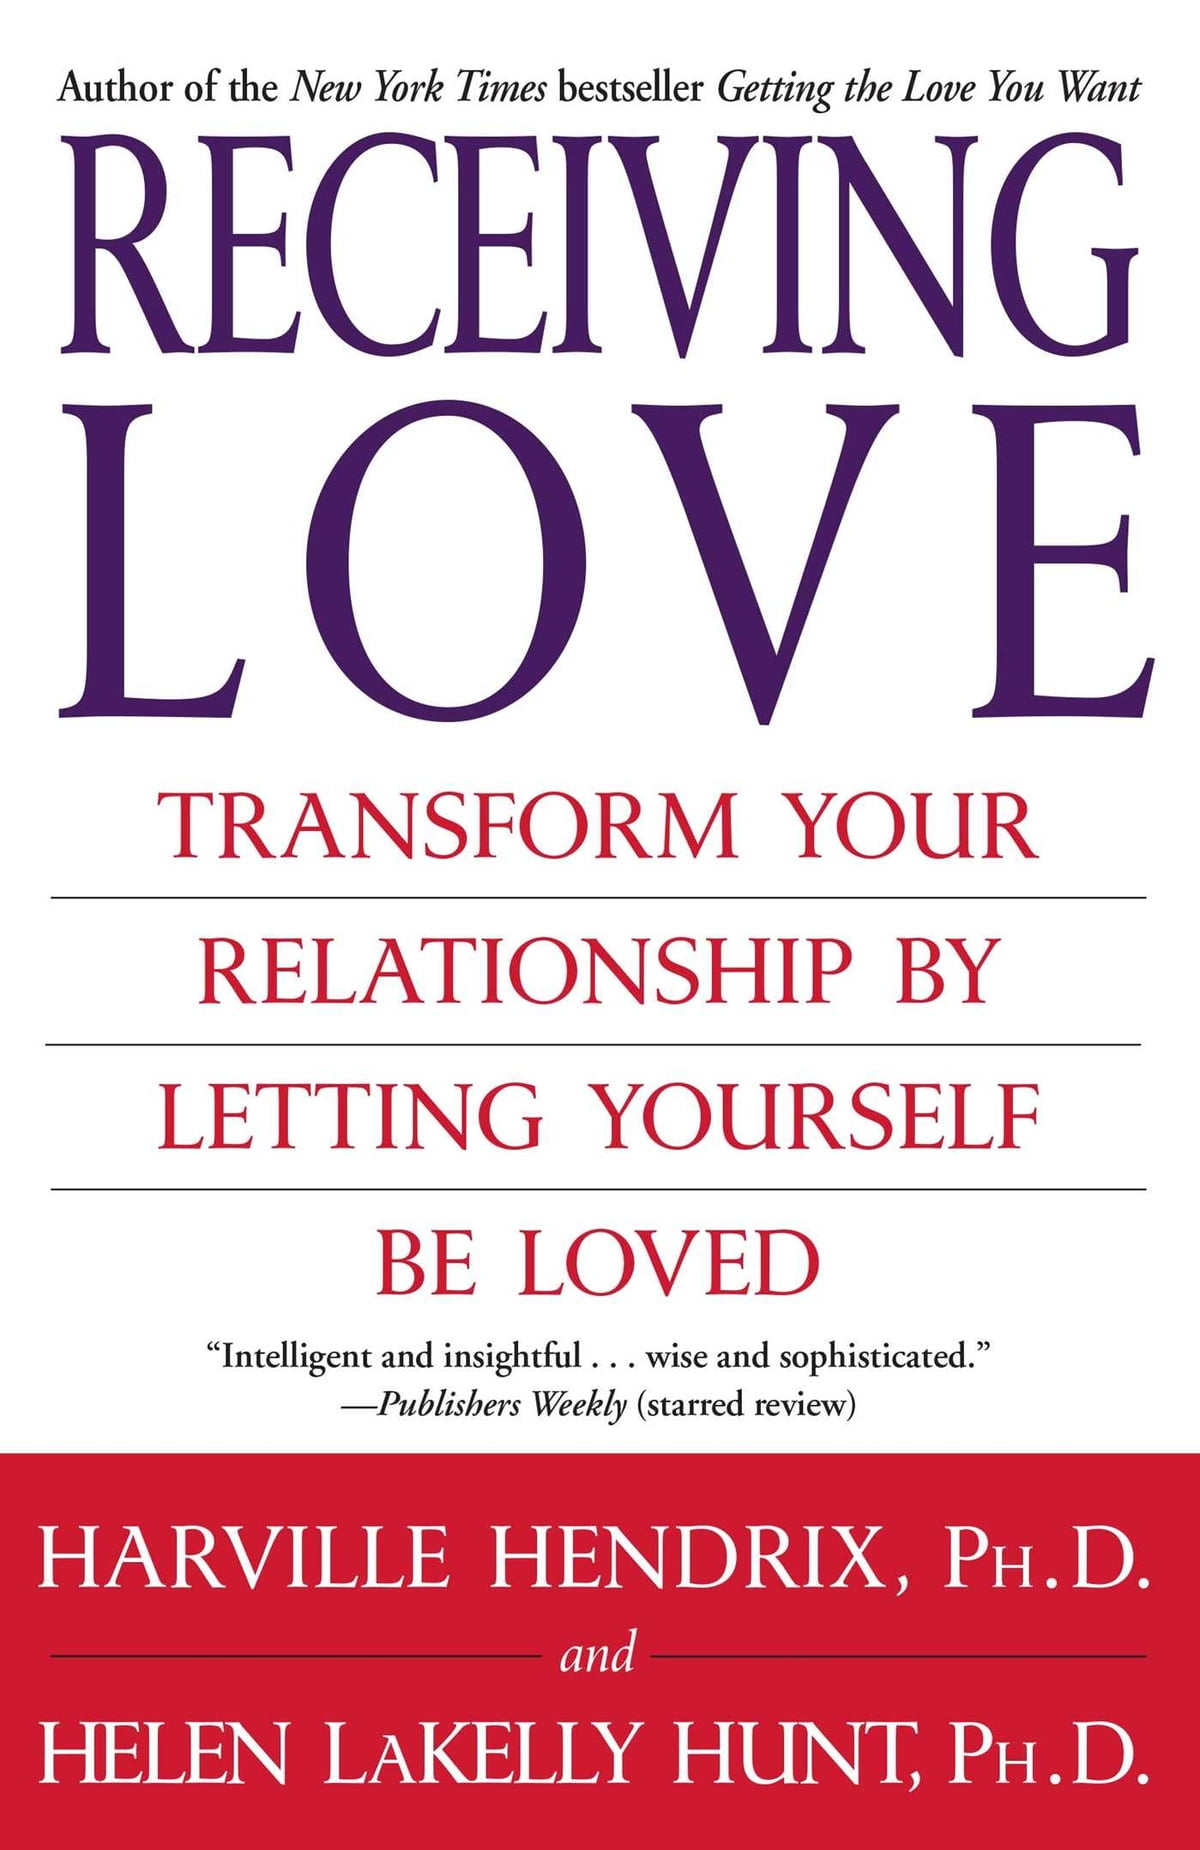 Workbooks receiving love workbook : Receiving Love eBook by Harville Hendrix, Ph.D. - 9781416507642 ...